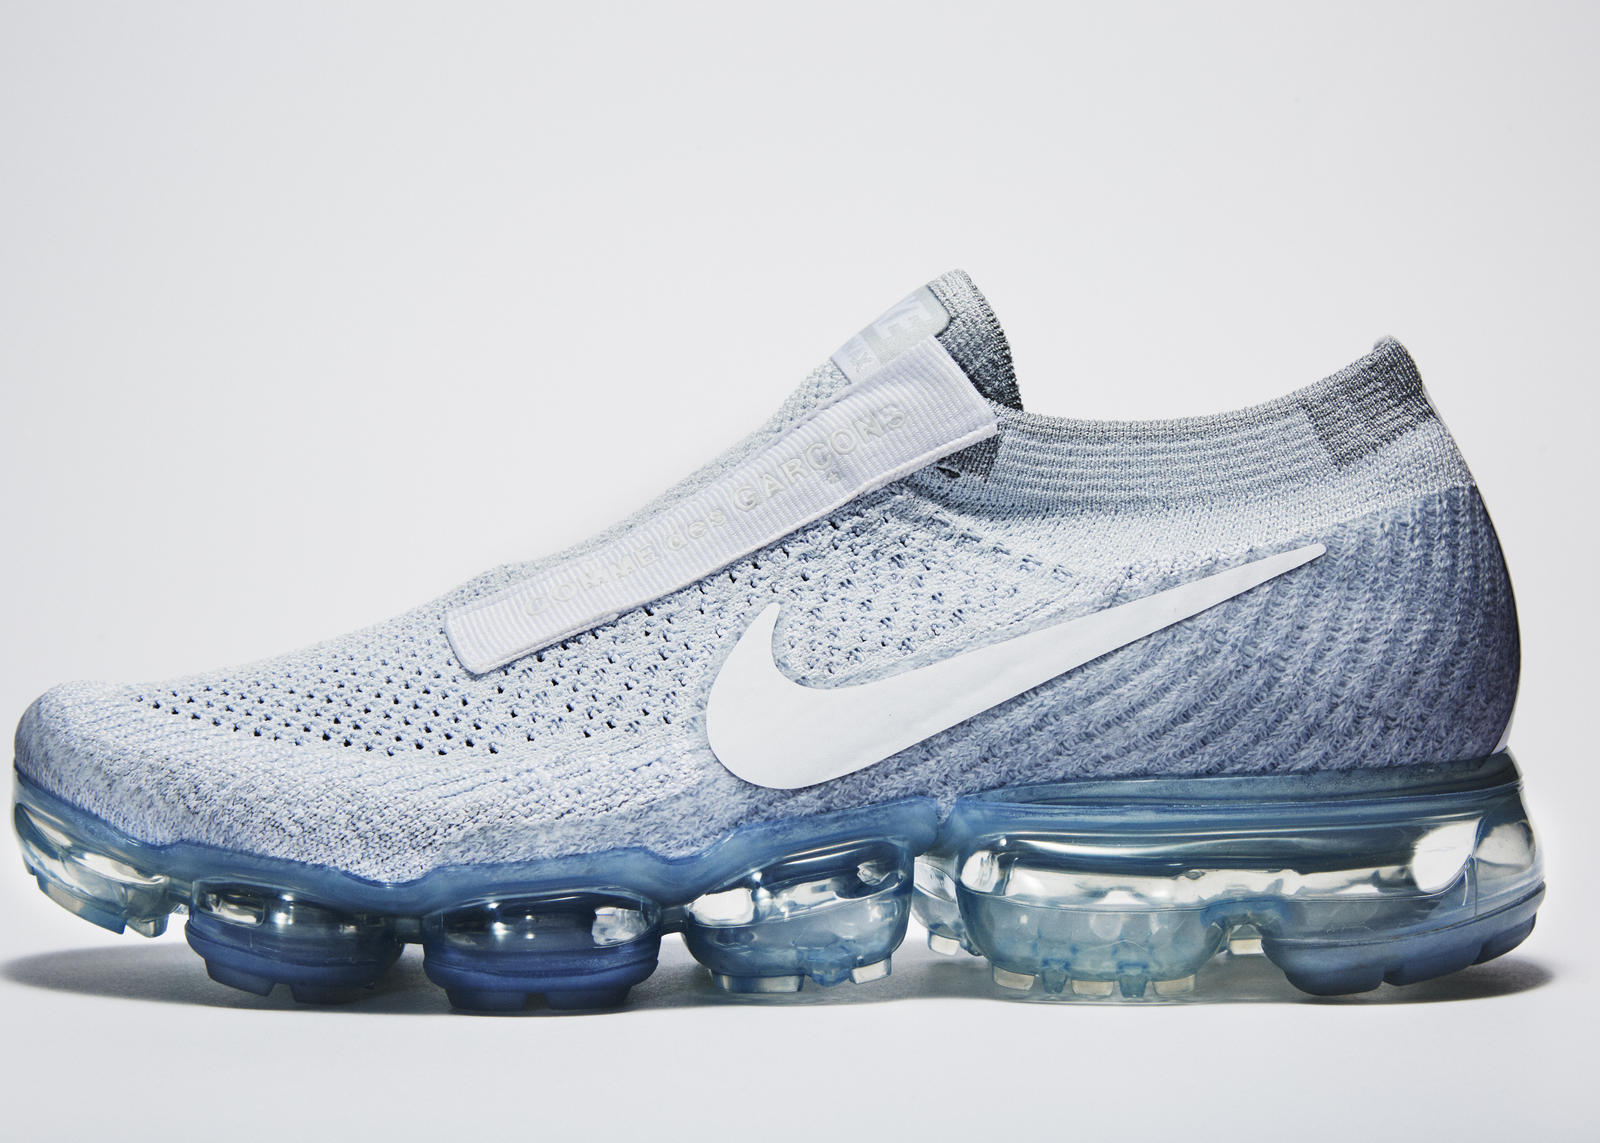 Nike Air VaporMax Flyknit Day to Night 'College Navy'. Nike Launch